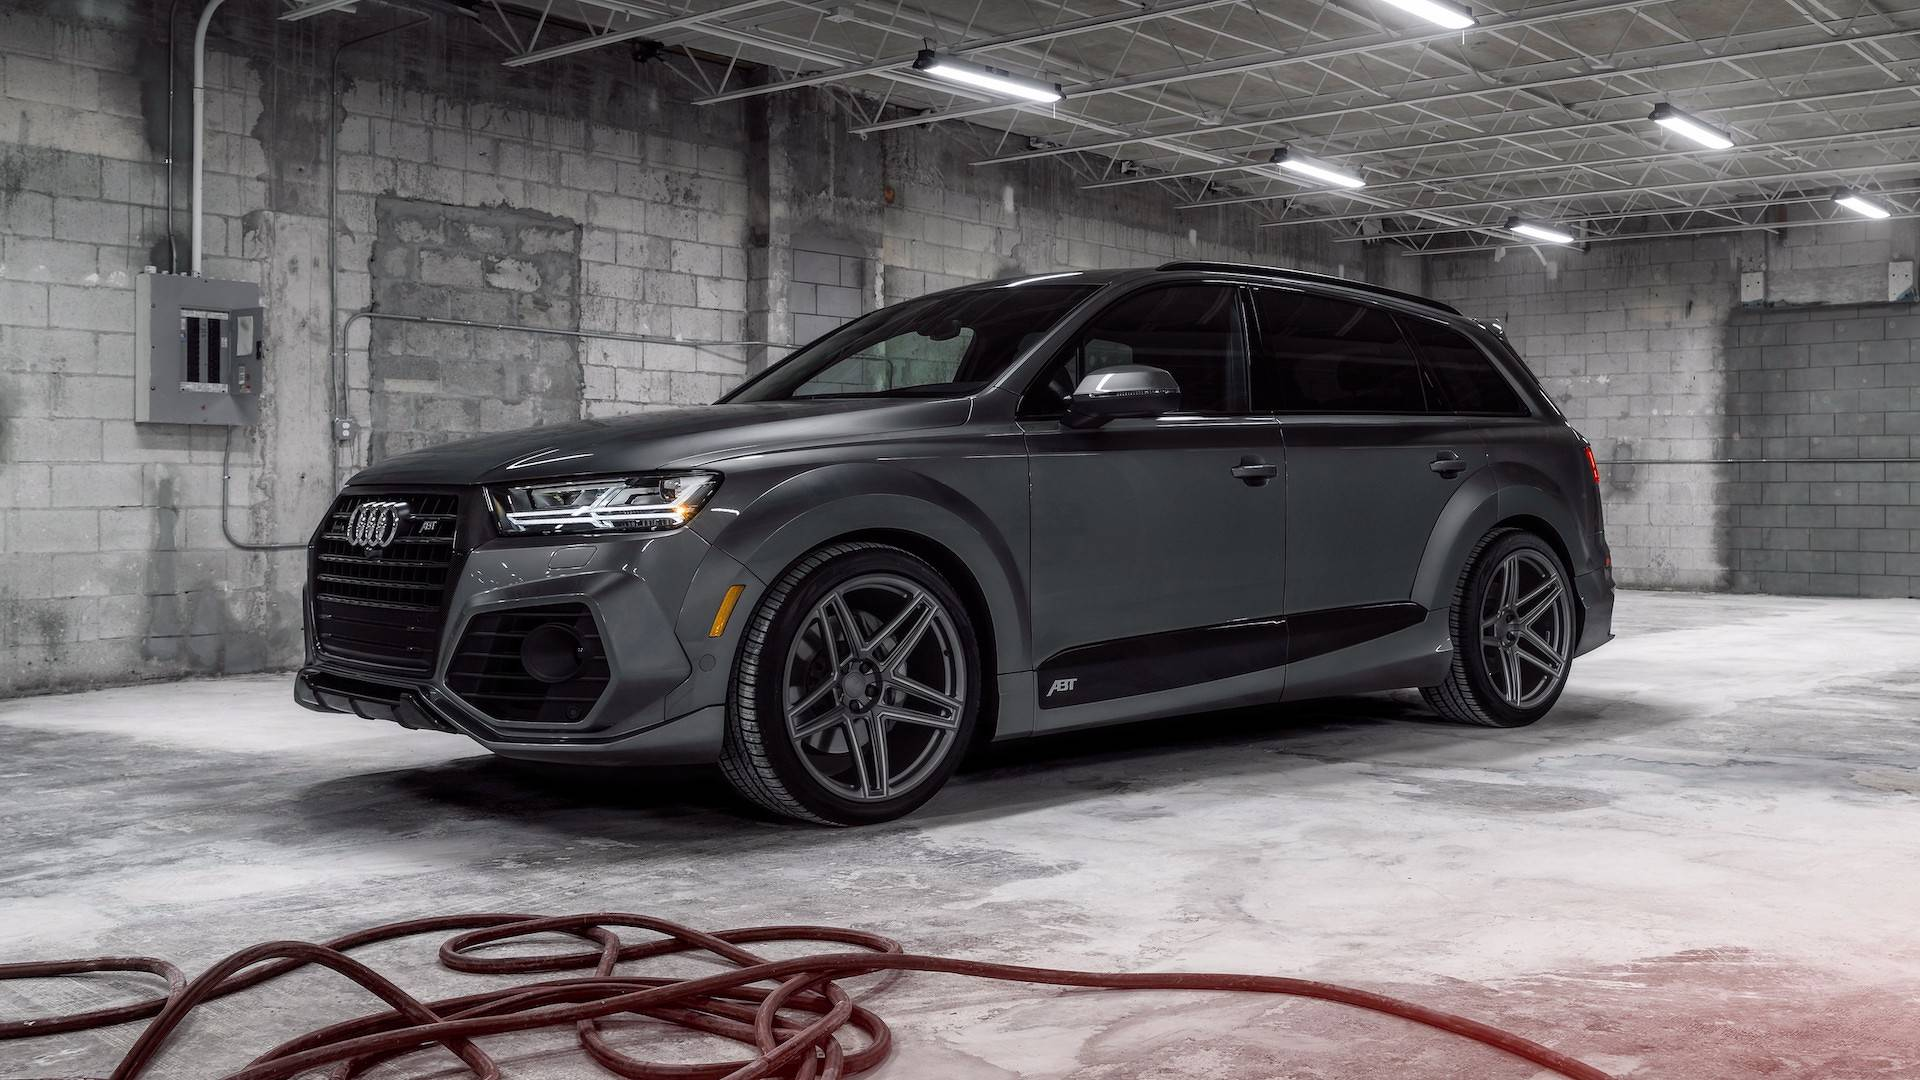 Abt And Vossen Team Up For A Mean Looking Audi Q7